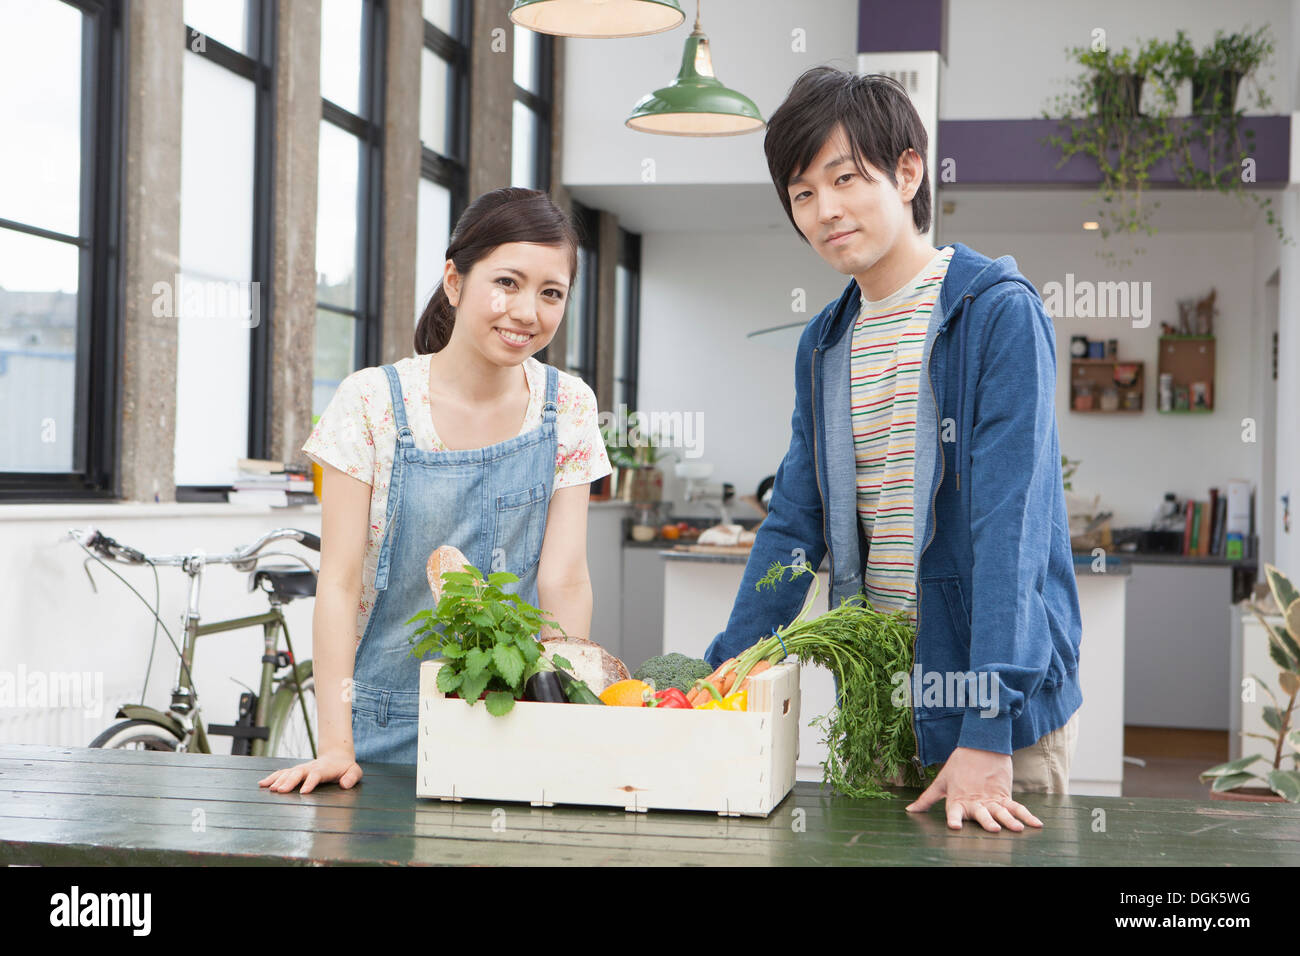 Portrait of young couple in kitchen with box of vegetables - Stock Image